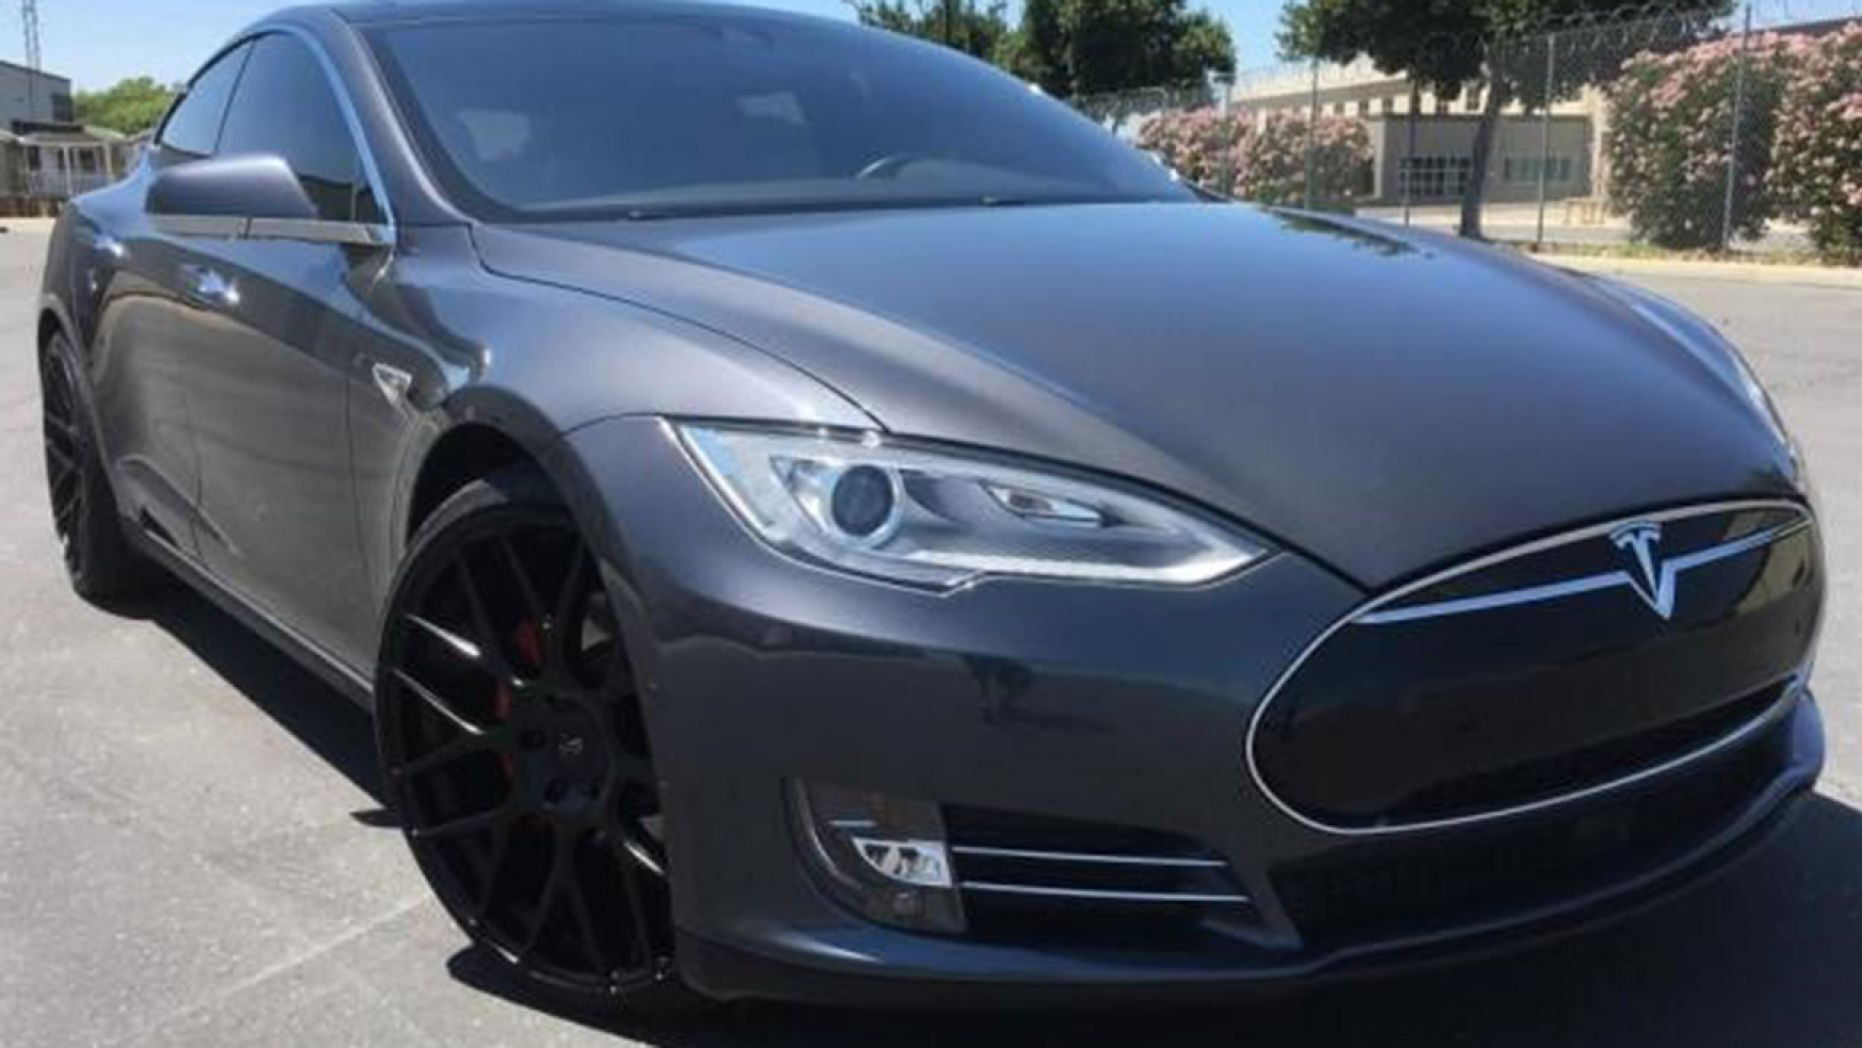 Tesla fires back at 'sudden acceleration' accusations